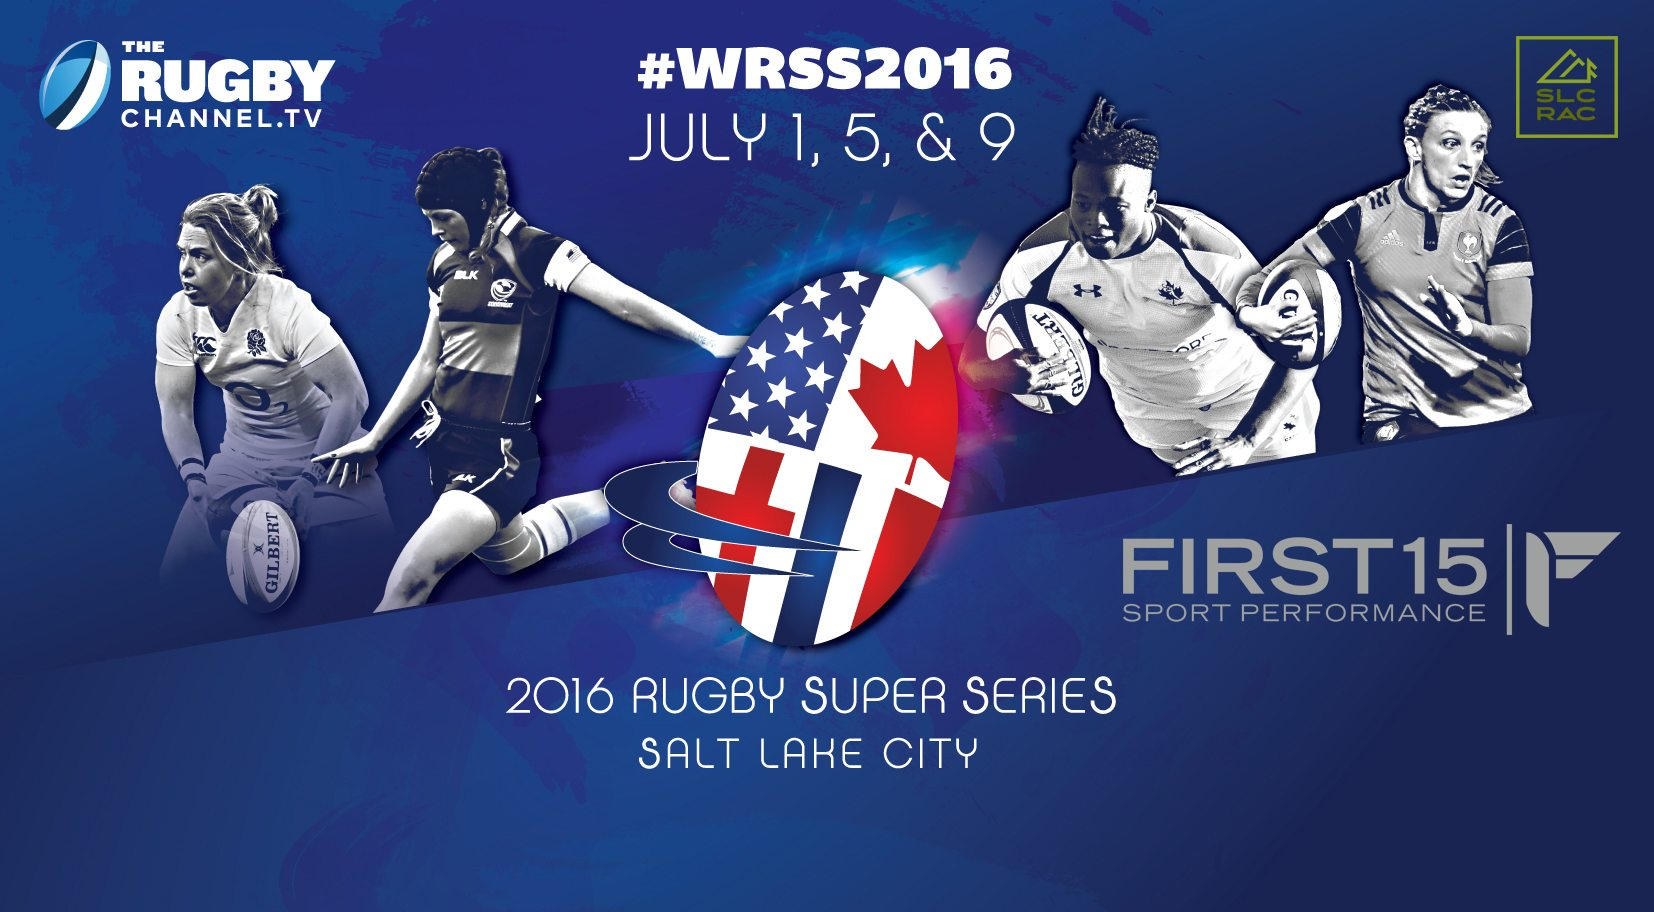 First15, USA Rugby team up to manage Women's Rugby Super Series, additional USA Women's National Team competitions in Salt Lake City